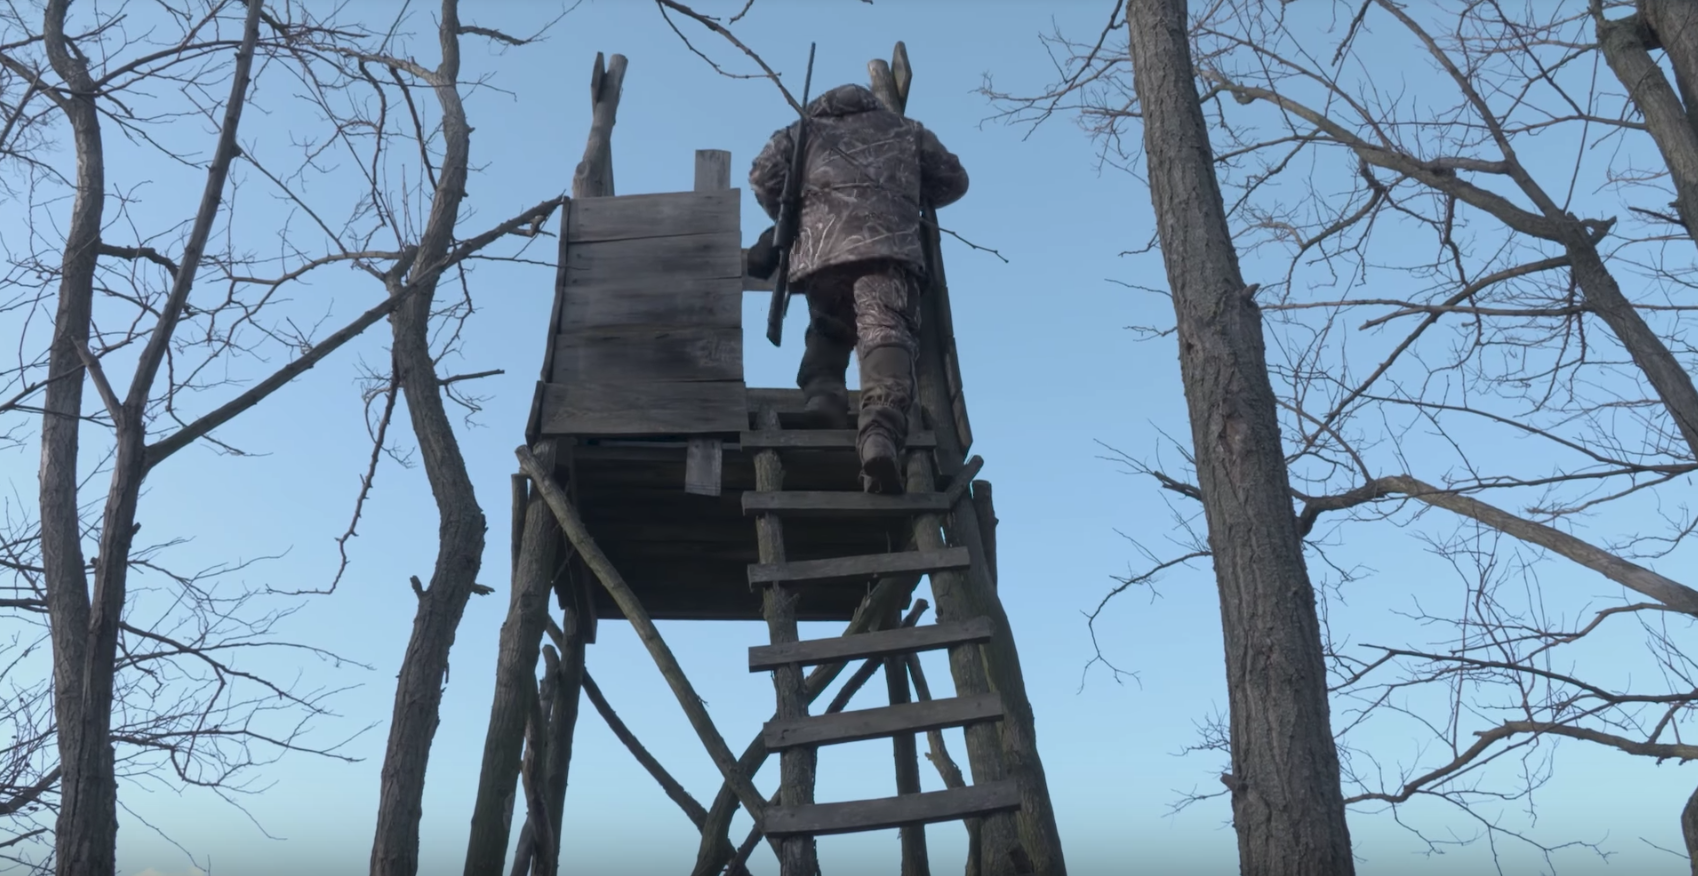 Driven boar from a high seat